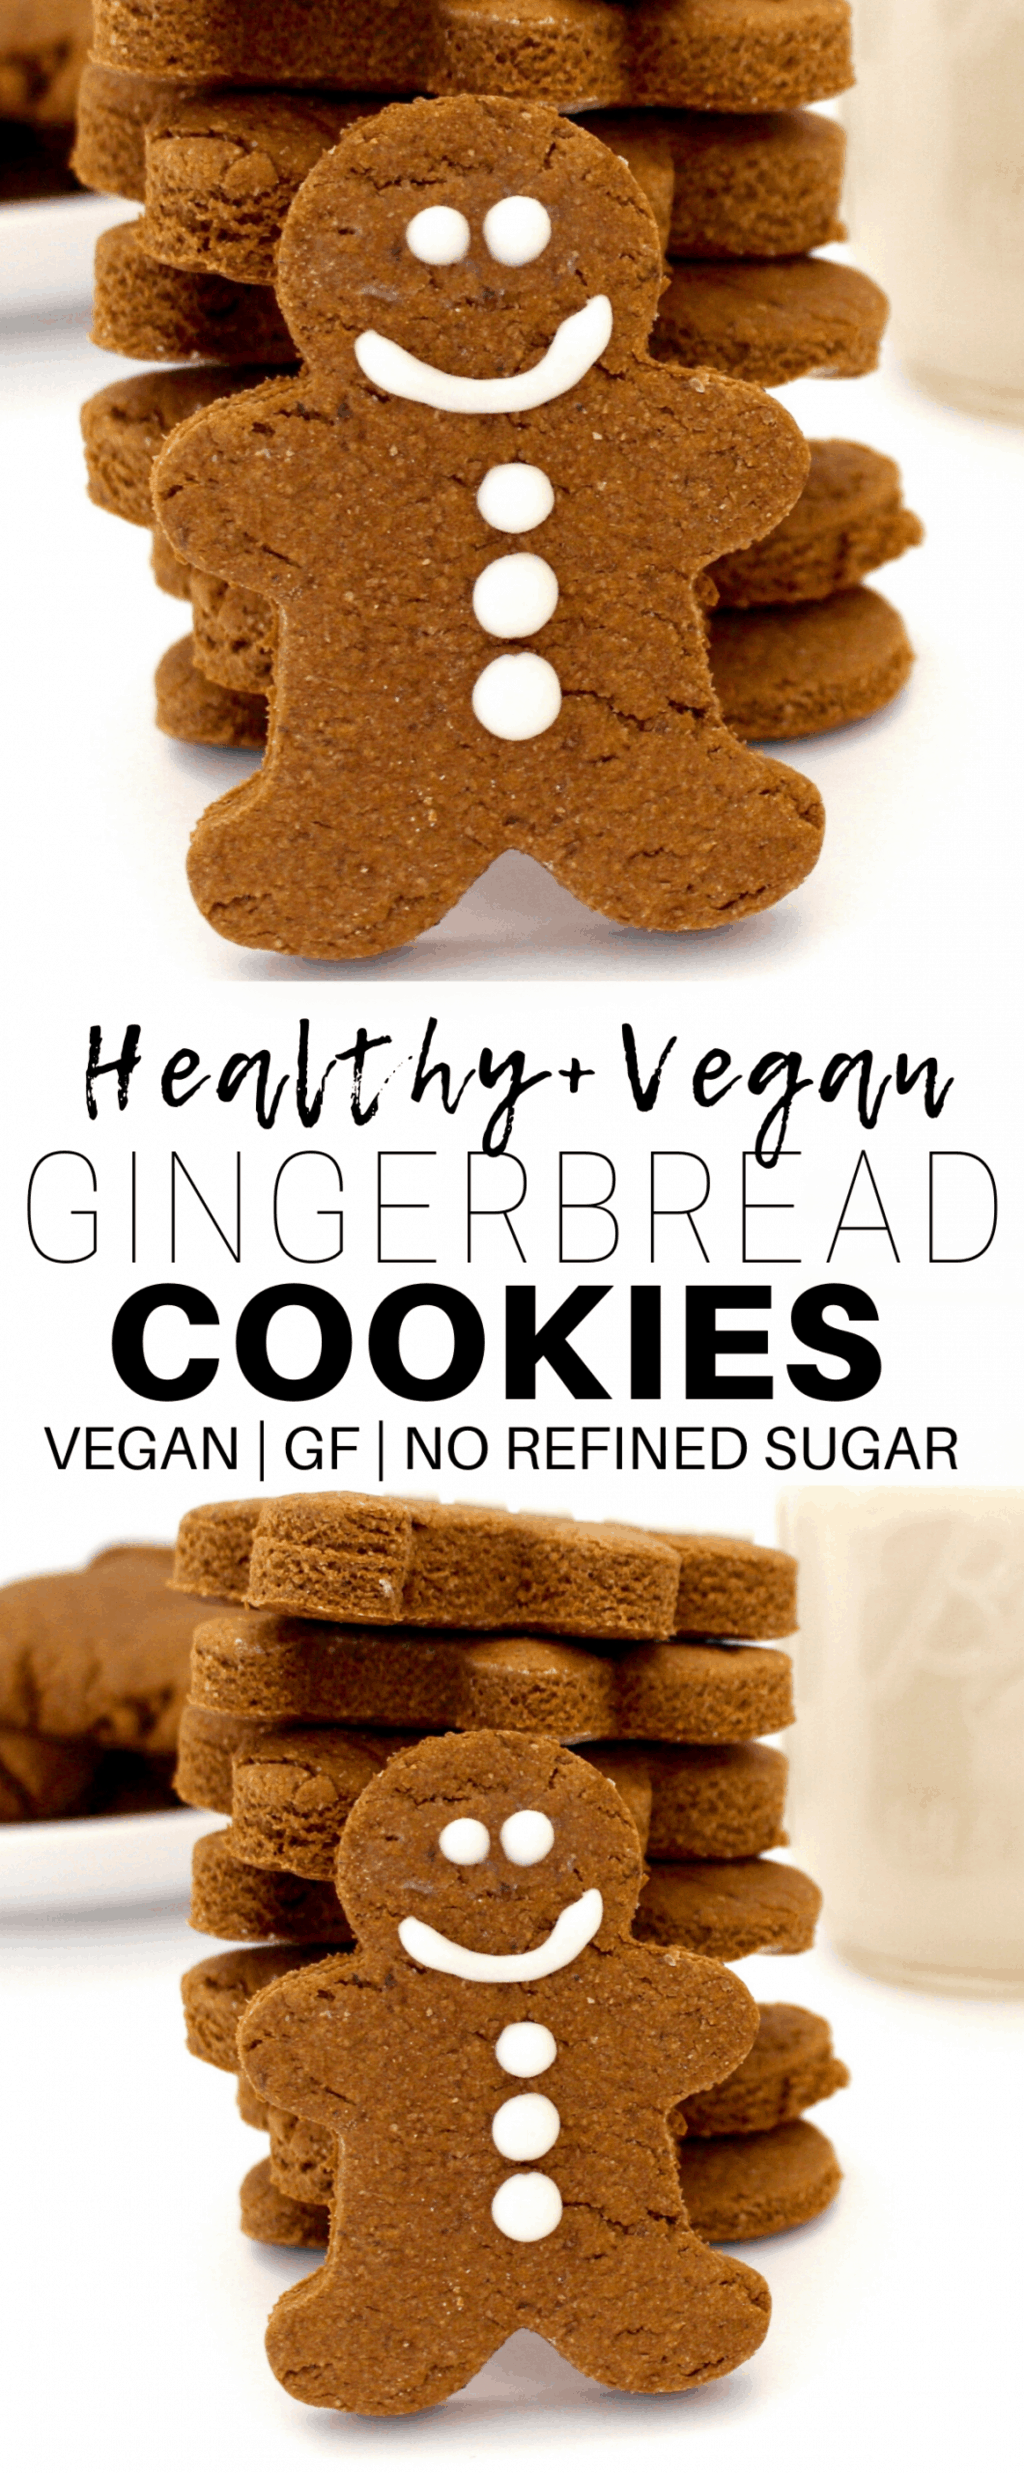 These adorable Vegan Gingerbread Cookies are sooo delicious and festive! They are vegan, gluten-free, and contain no refined sugar, making them the perfect little holiday treat!